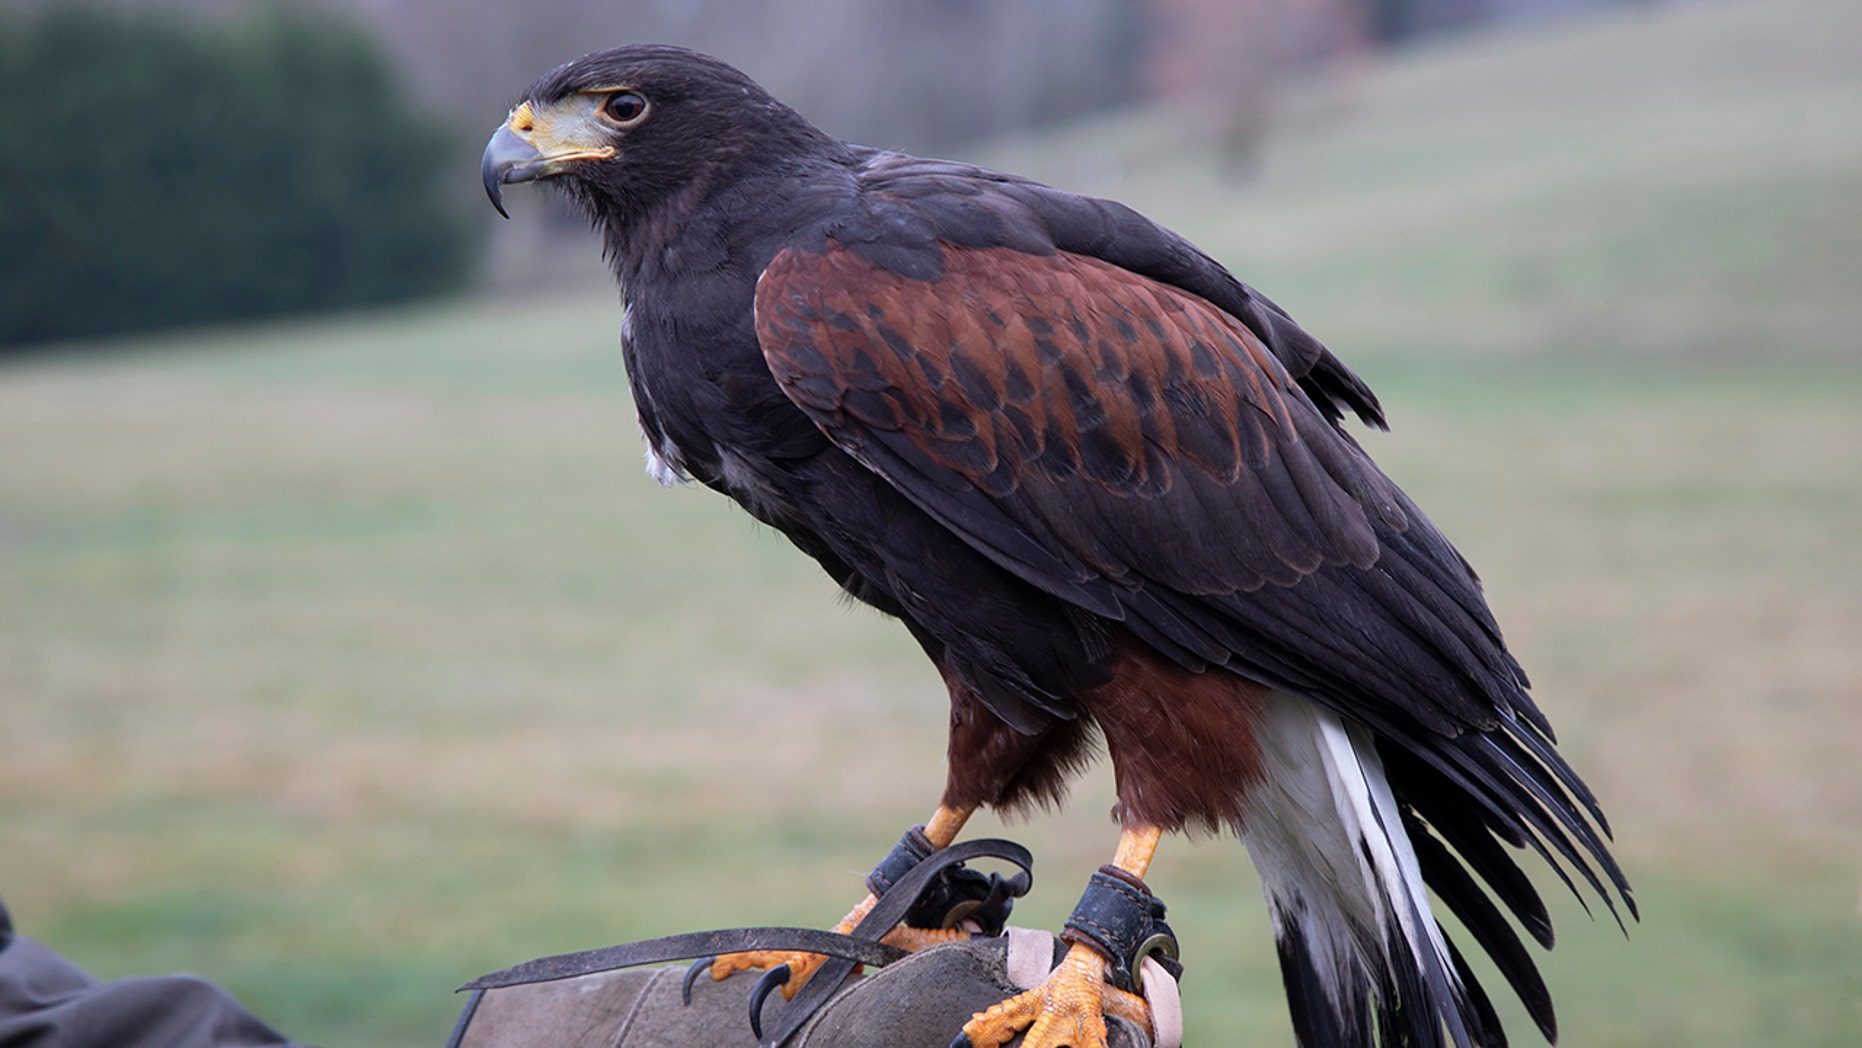 Harris Hawk, like the one pictured, was stolen near Heathrow Airport on Tuesday evening.